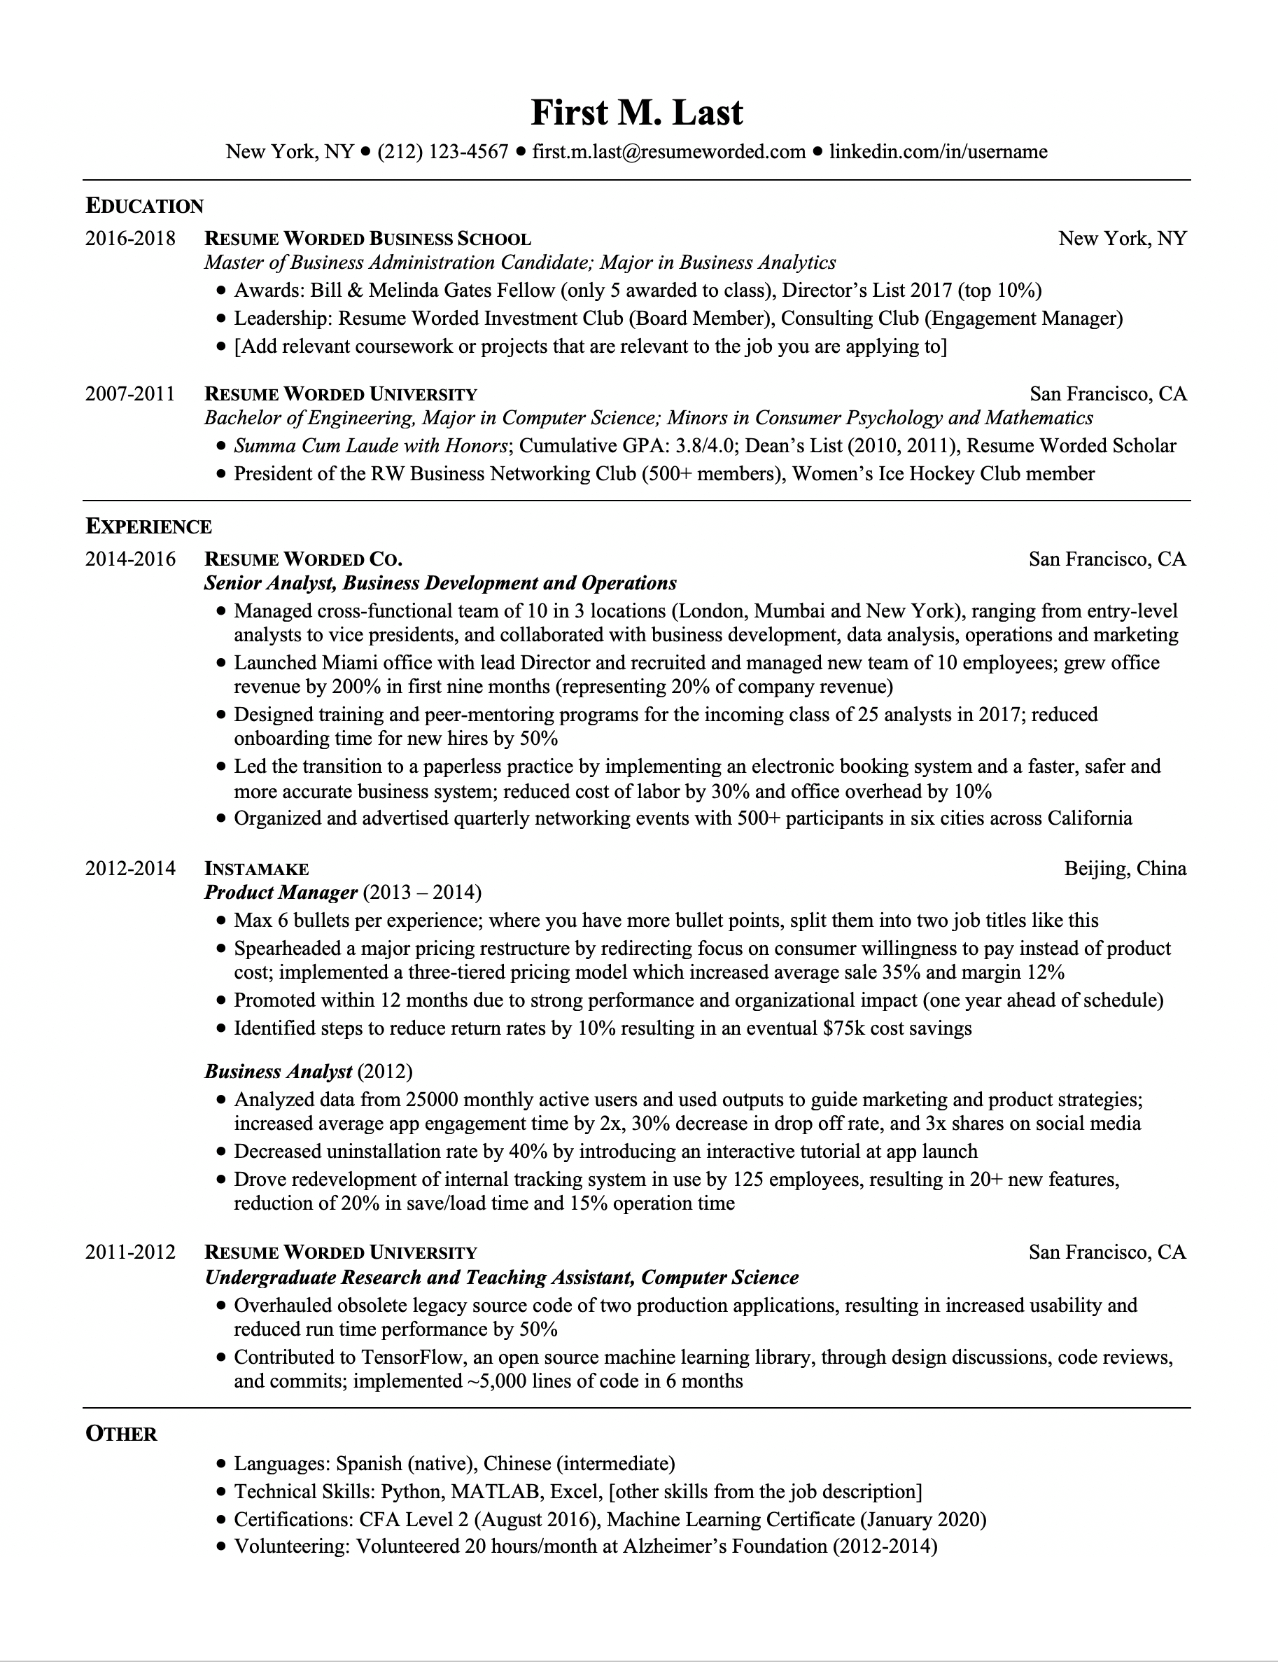 Professional ATS Resume Templates for Experienced Hires and College